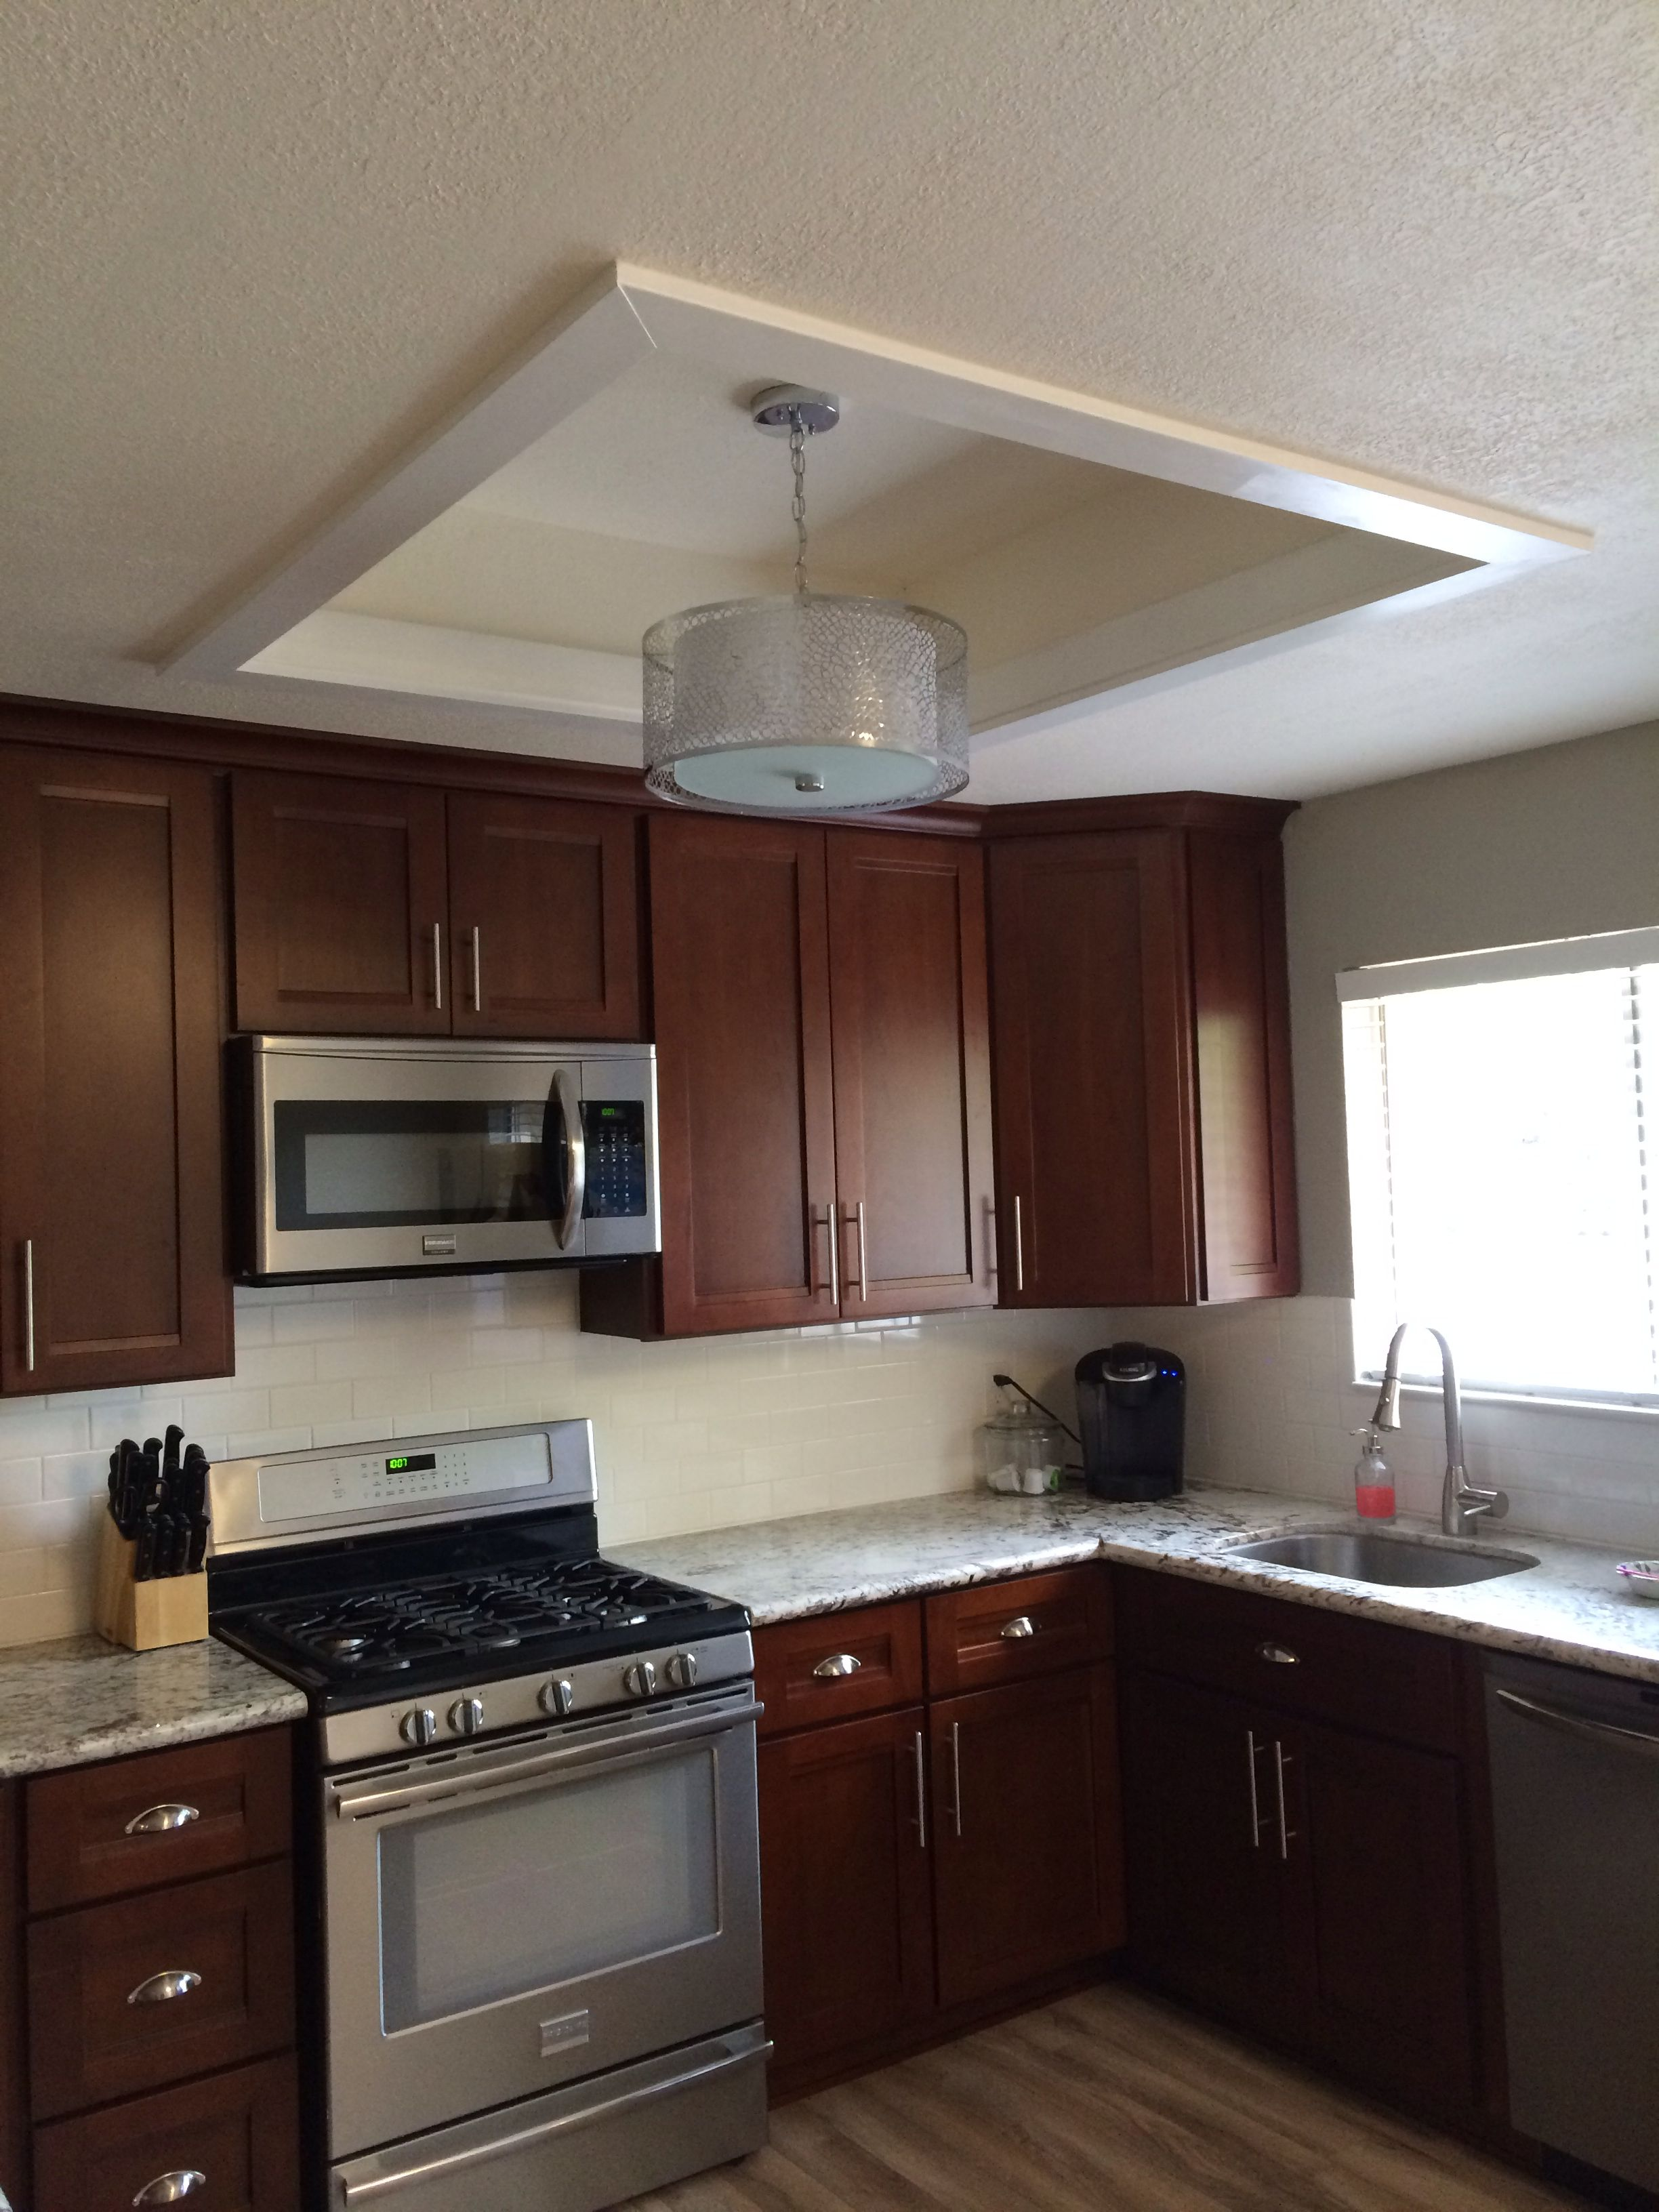 fluorescent kitchen light box makeover building a nest in 2019 rh pinterest com Fluorescent Kitchen Light Upgrade Fluorescent 4 Light Kitchen